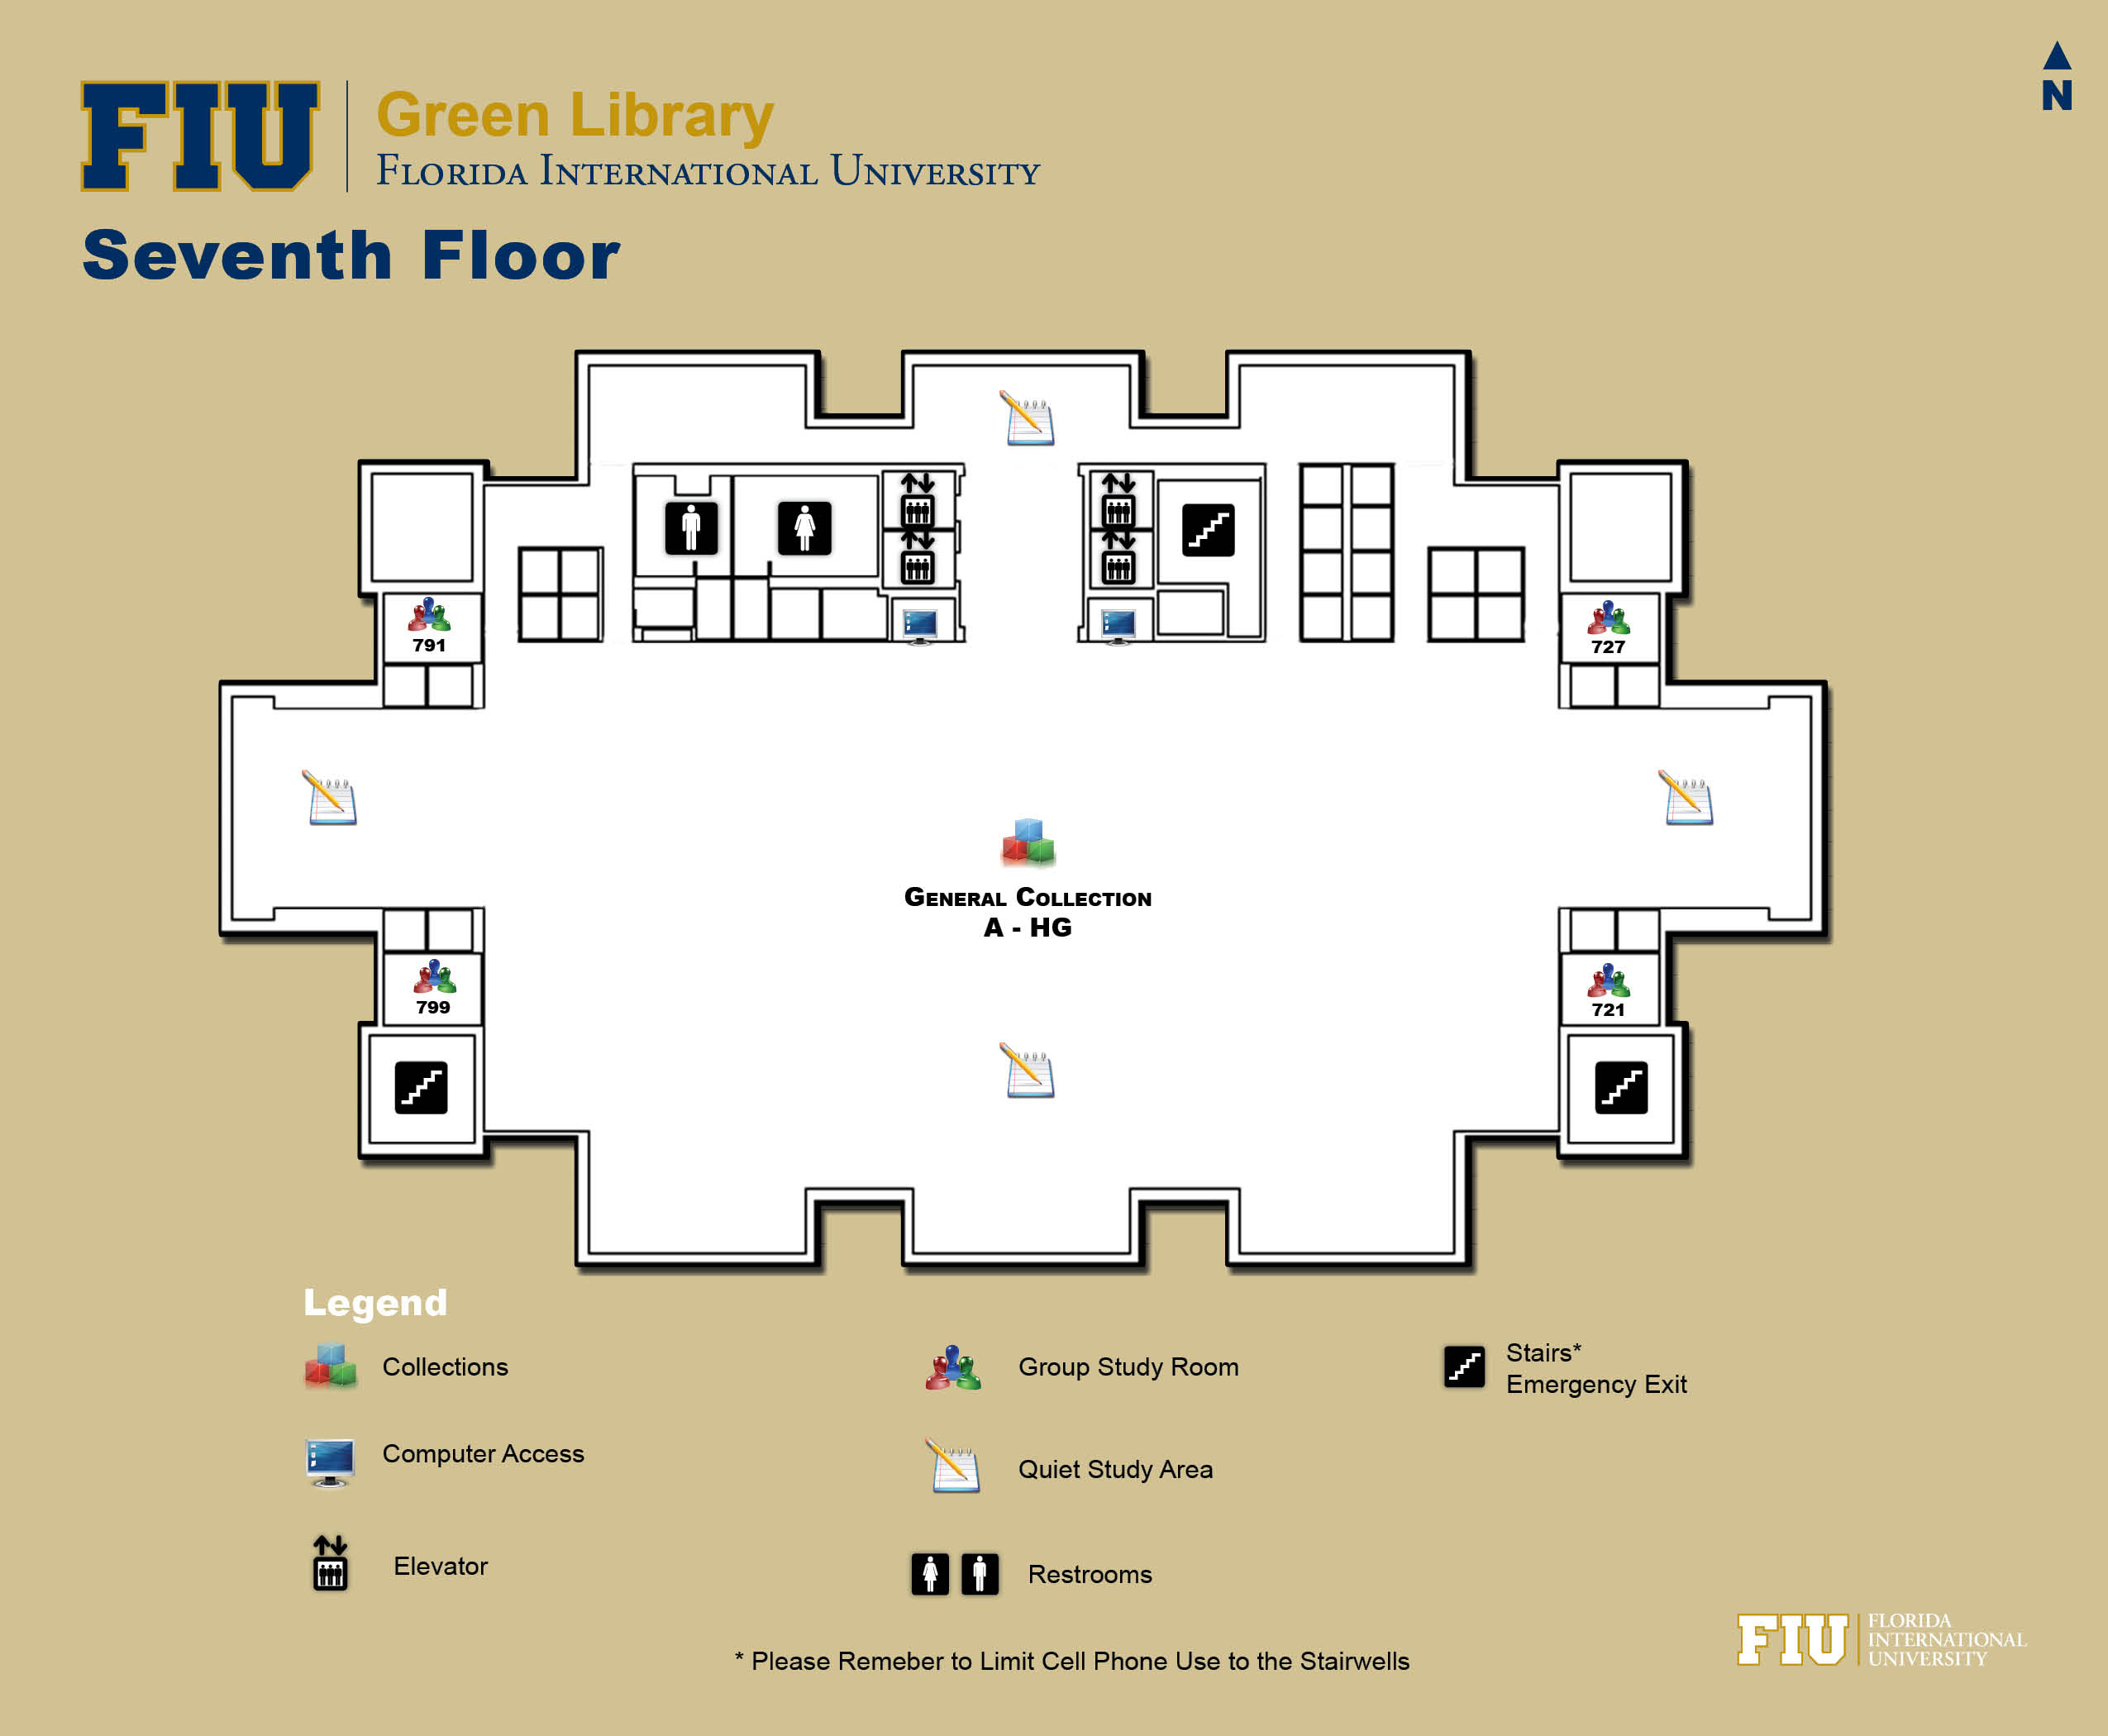 Floorplan for Floor 7 of Green Library